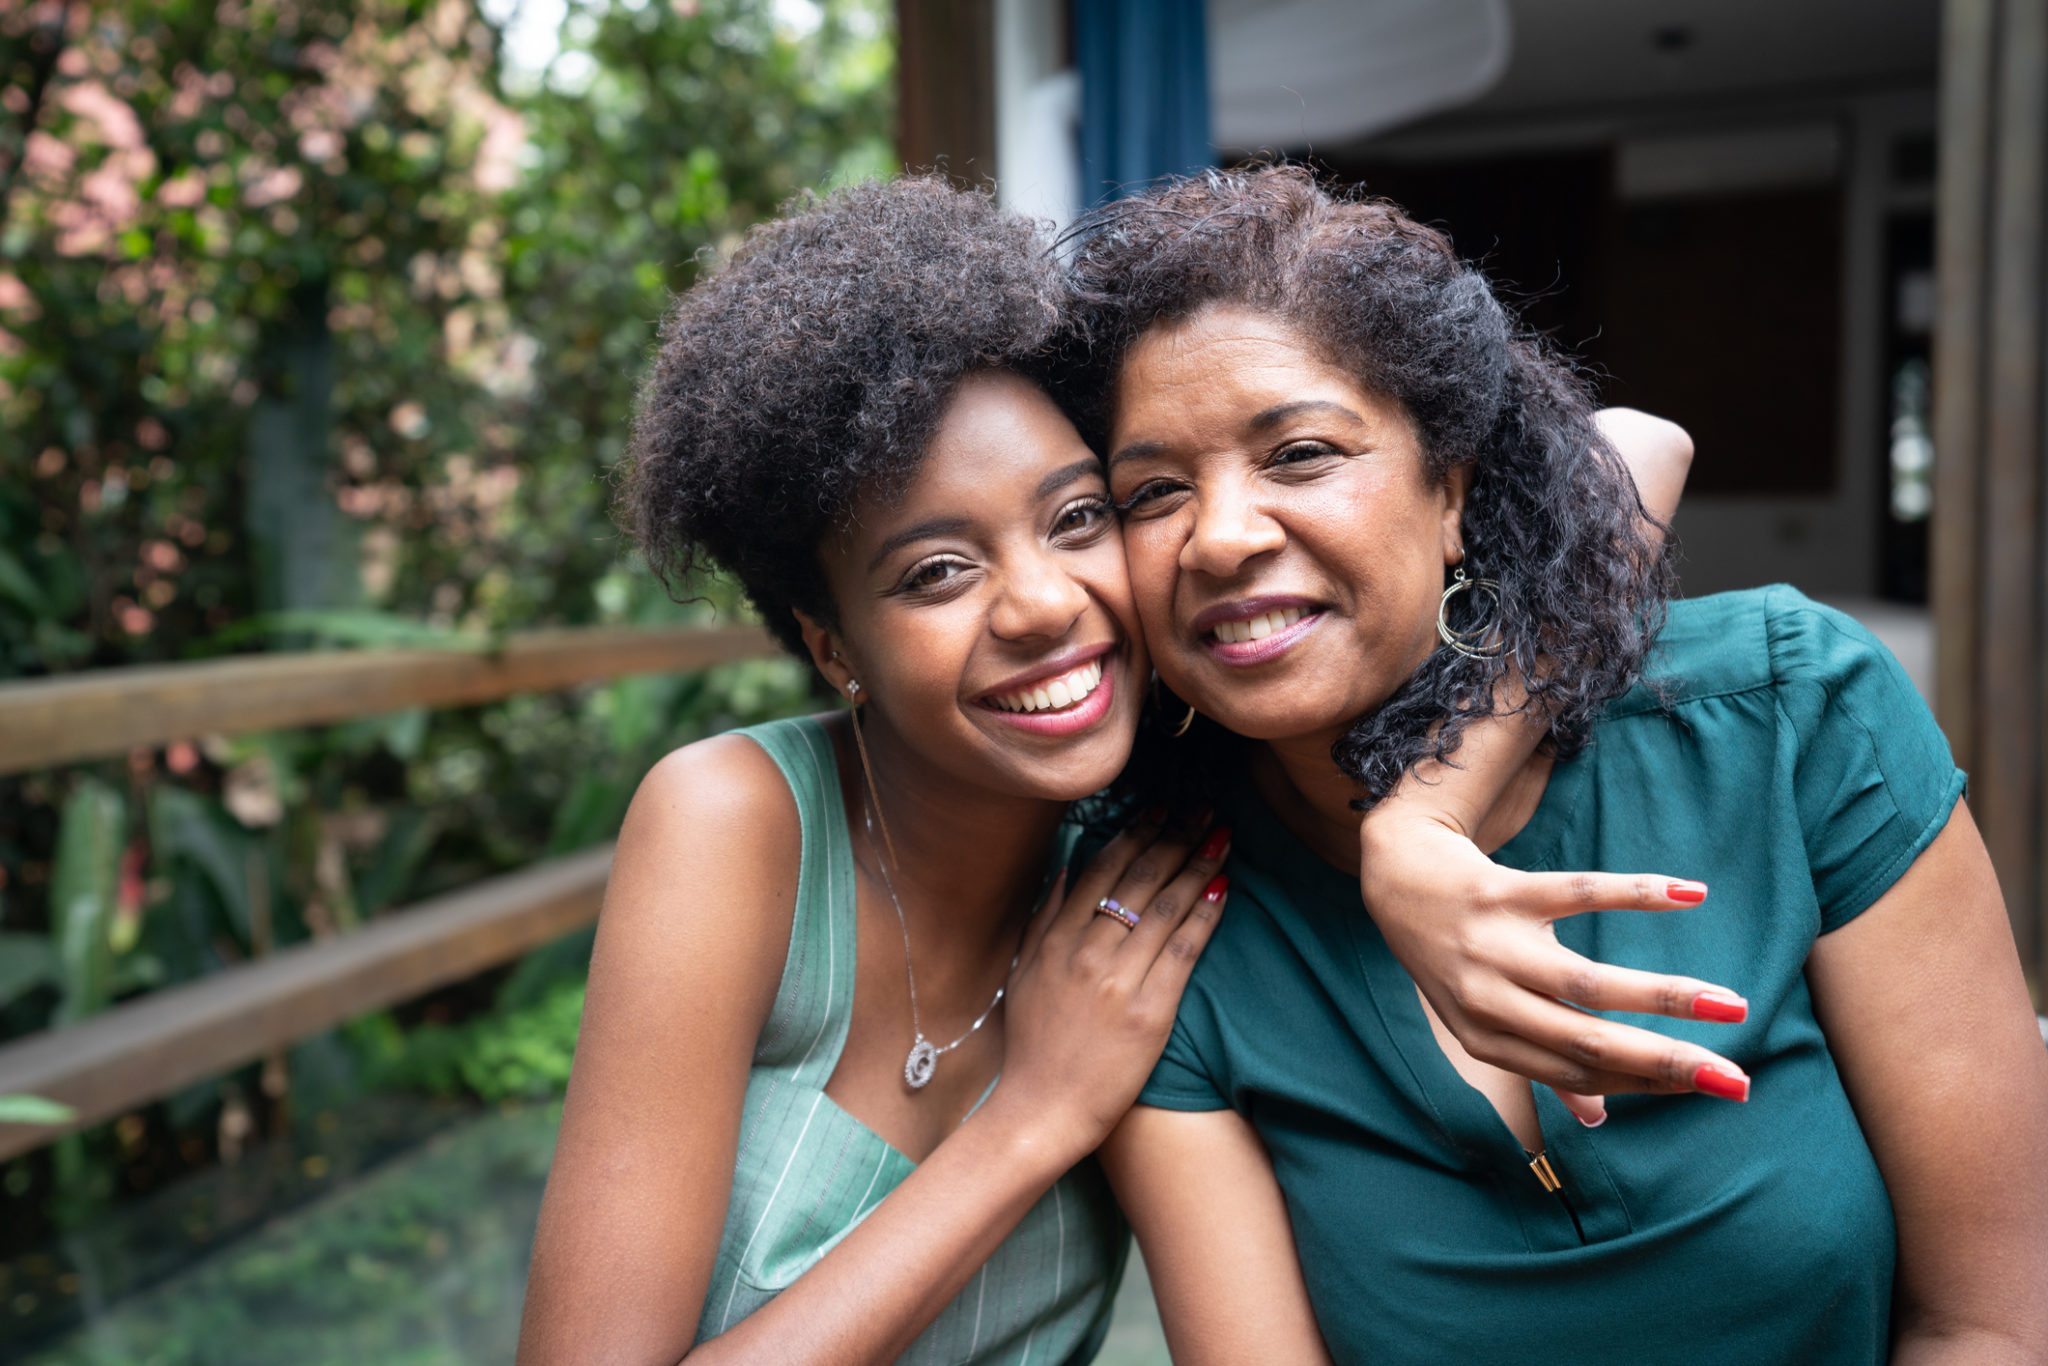 African American Mother and Daughter Embracing outside on a deck, smiling at the camera